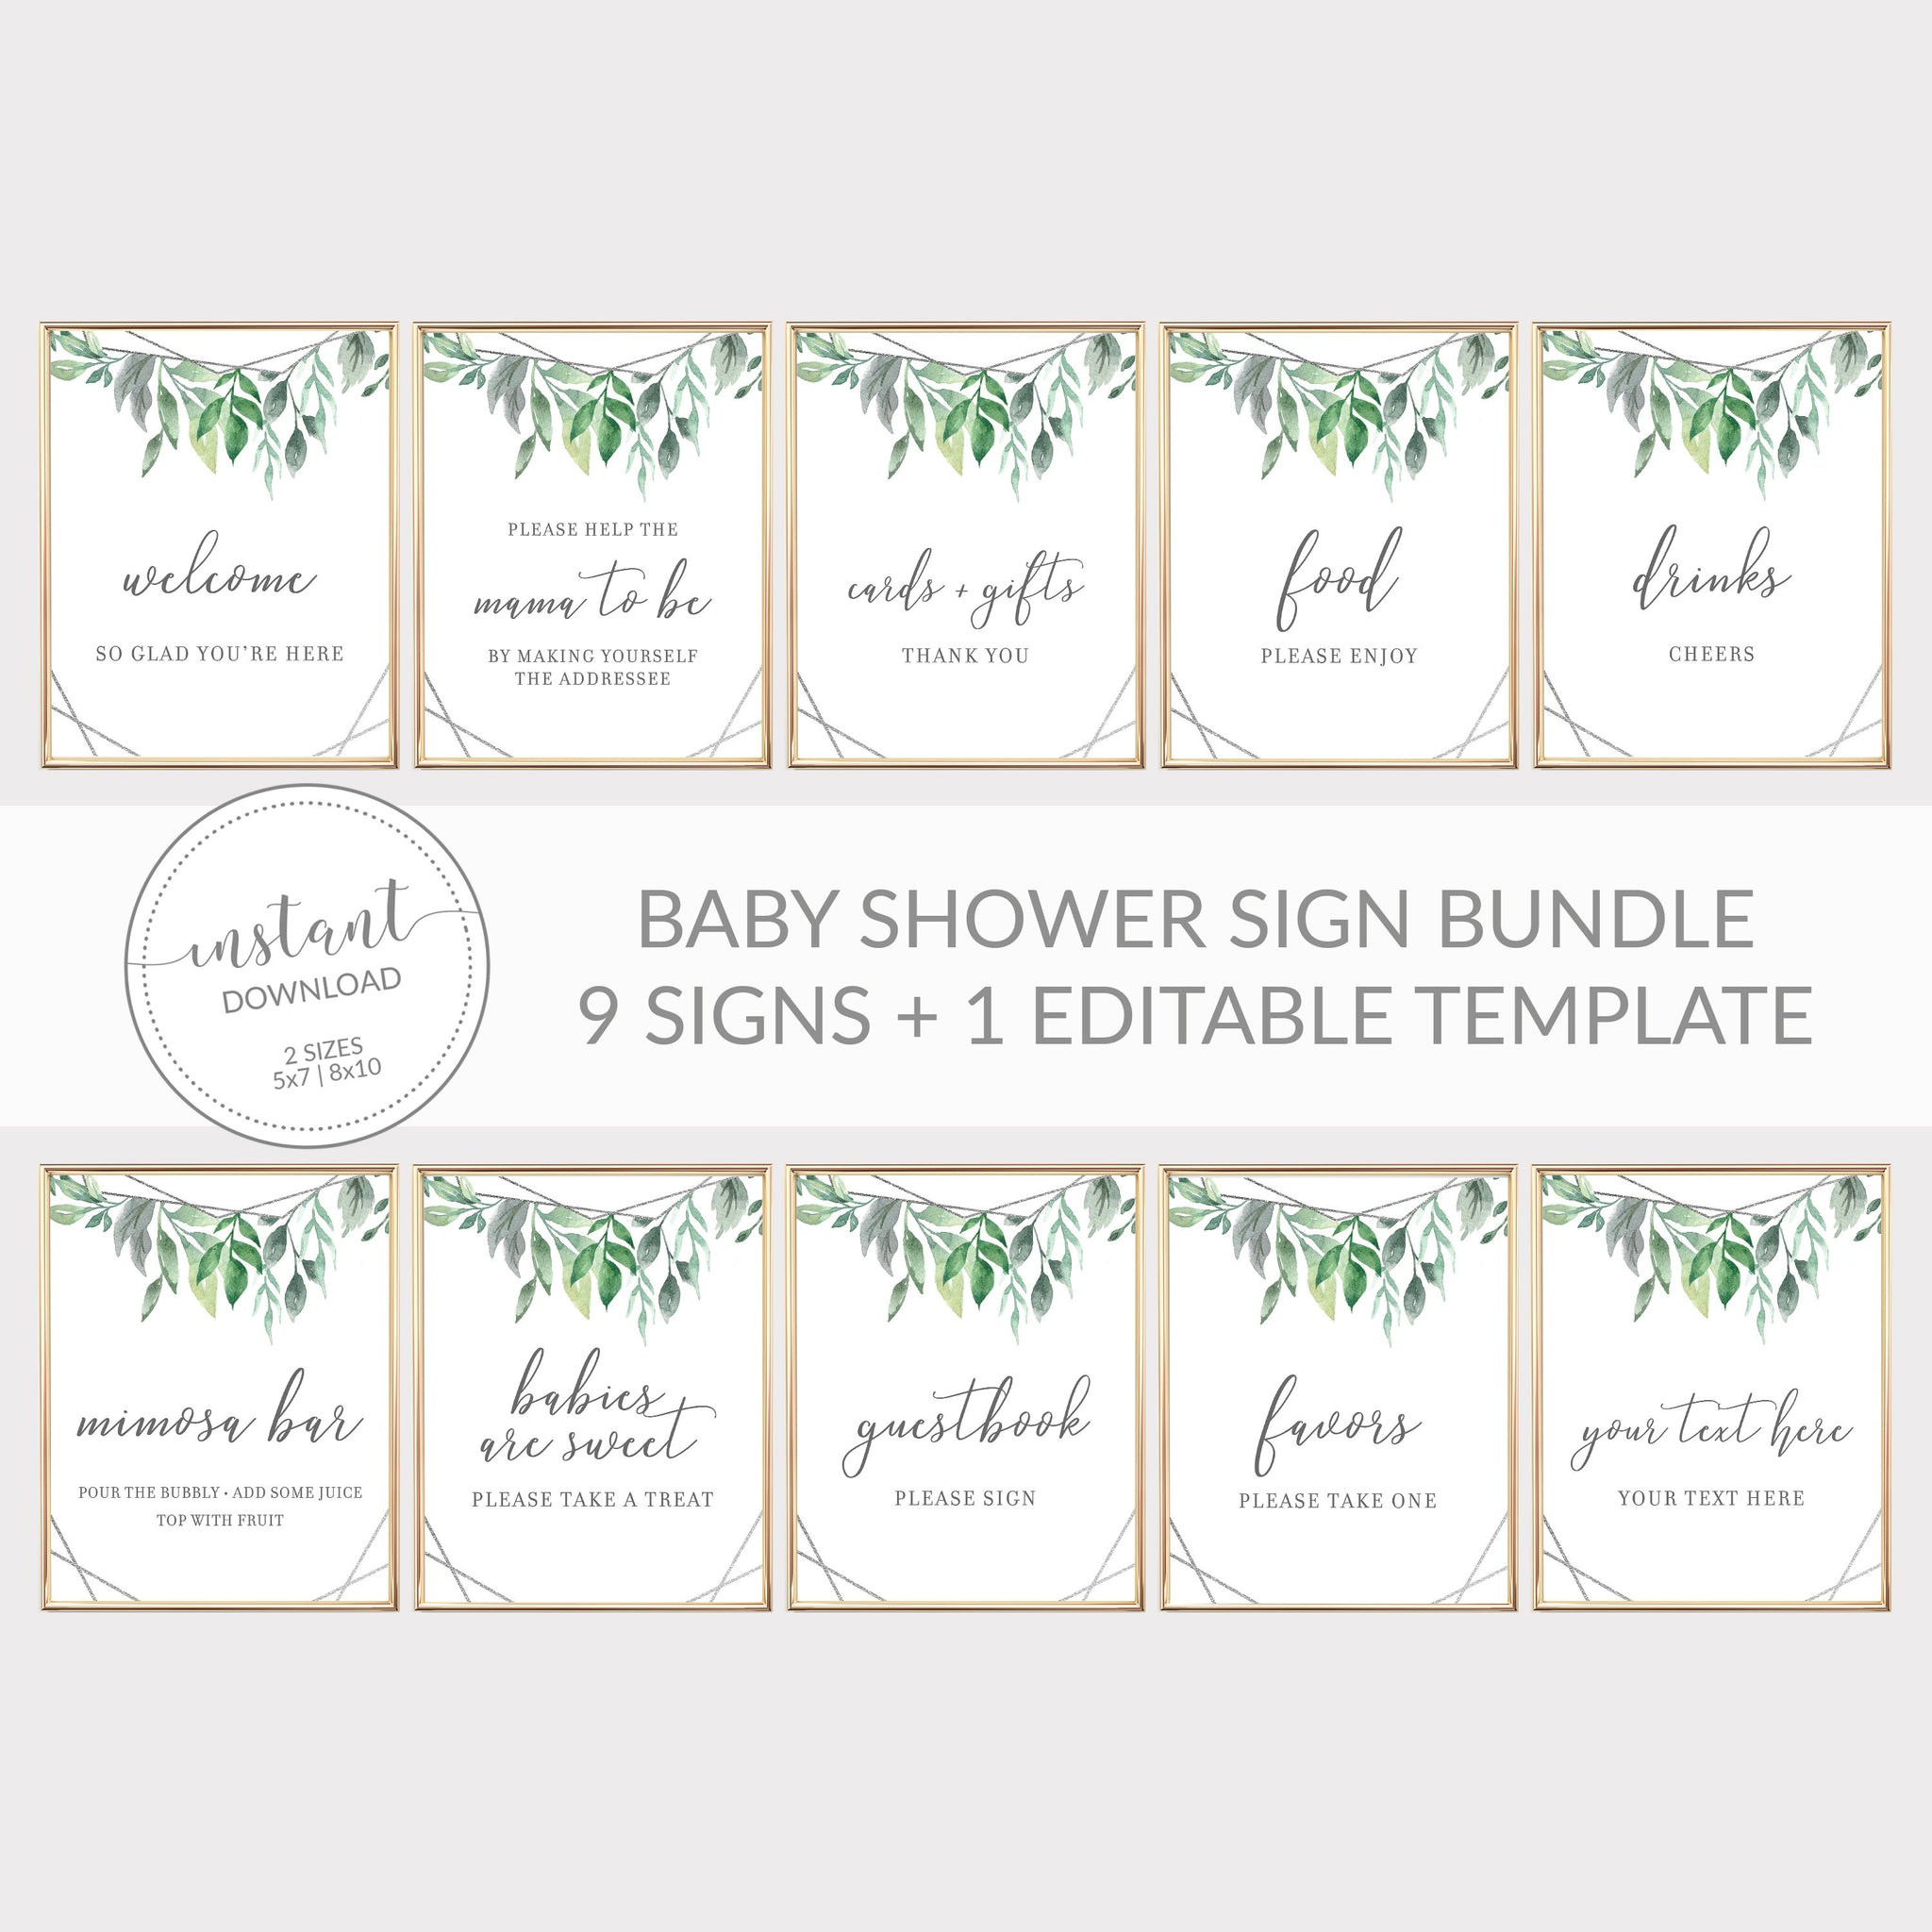 Geometric Silver Greenery Printable Baby Shower Sign Bundle, INSTANT DOWNLOAD, Editable Baby Shower Sign, Sip and See Decorations - GFS100